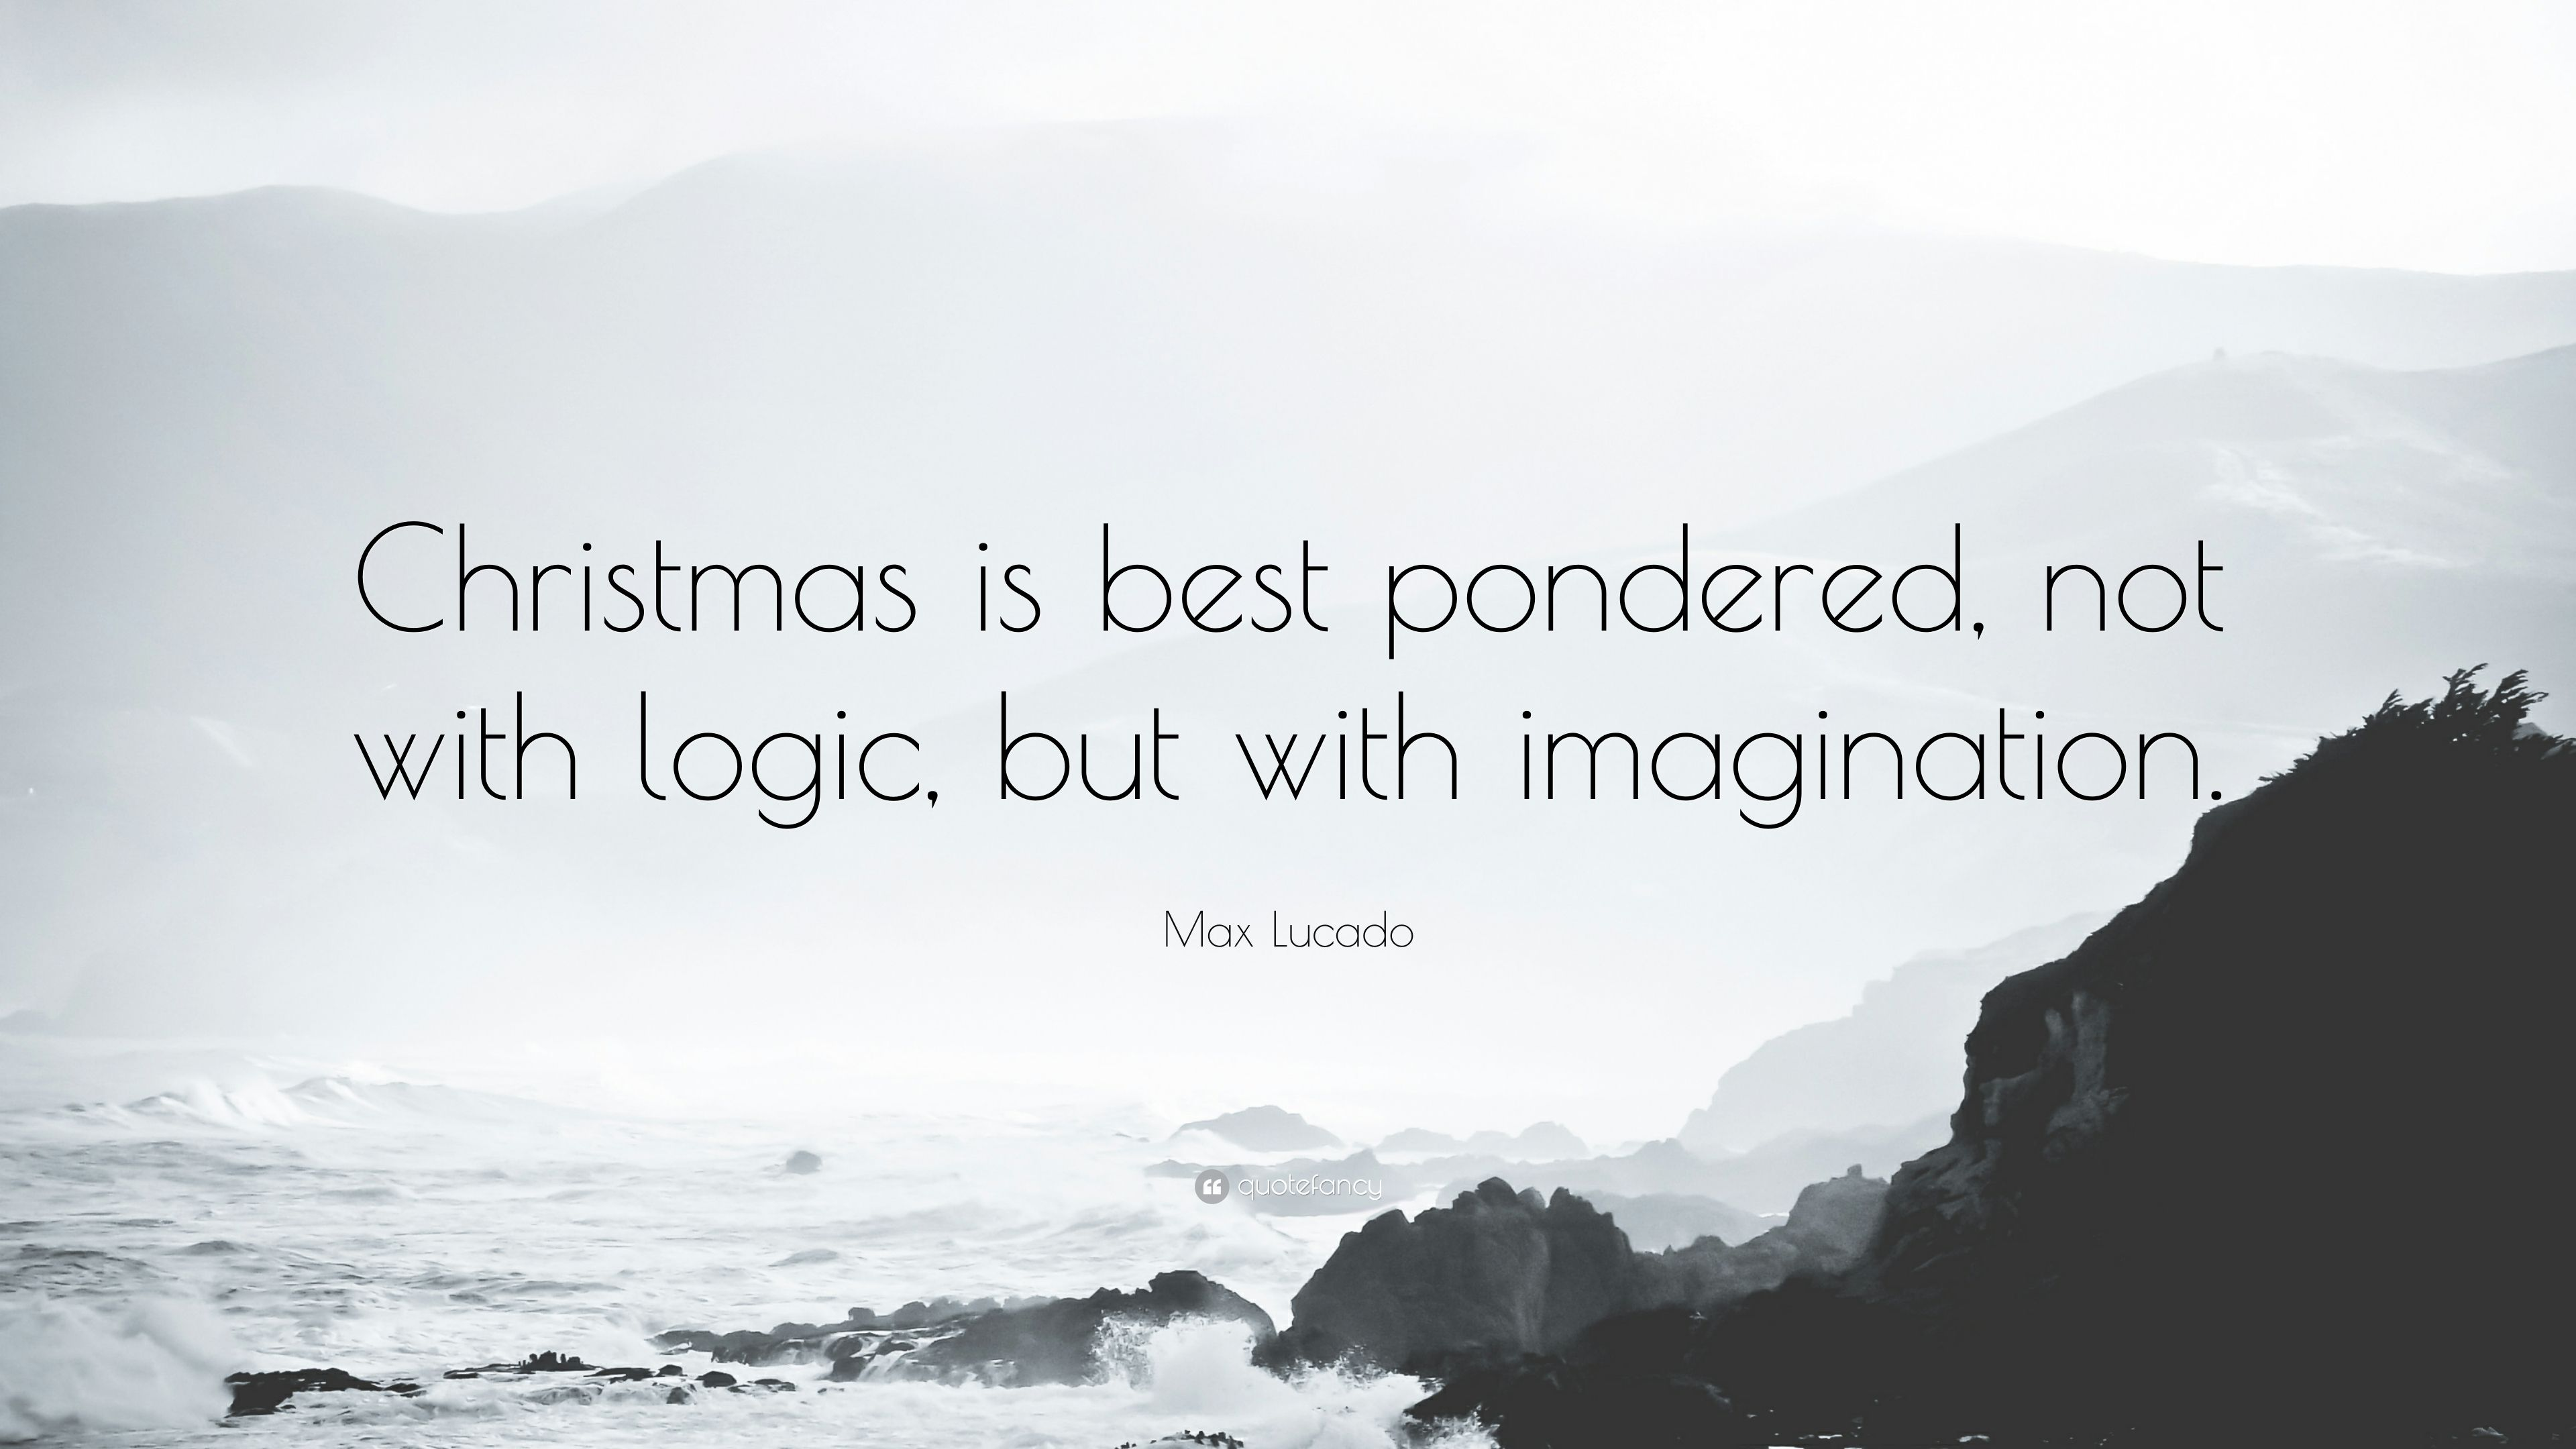 Max Lucado Christmas.Max Lucado Quote Christmas Is Best Pondered Not With